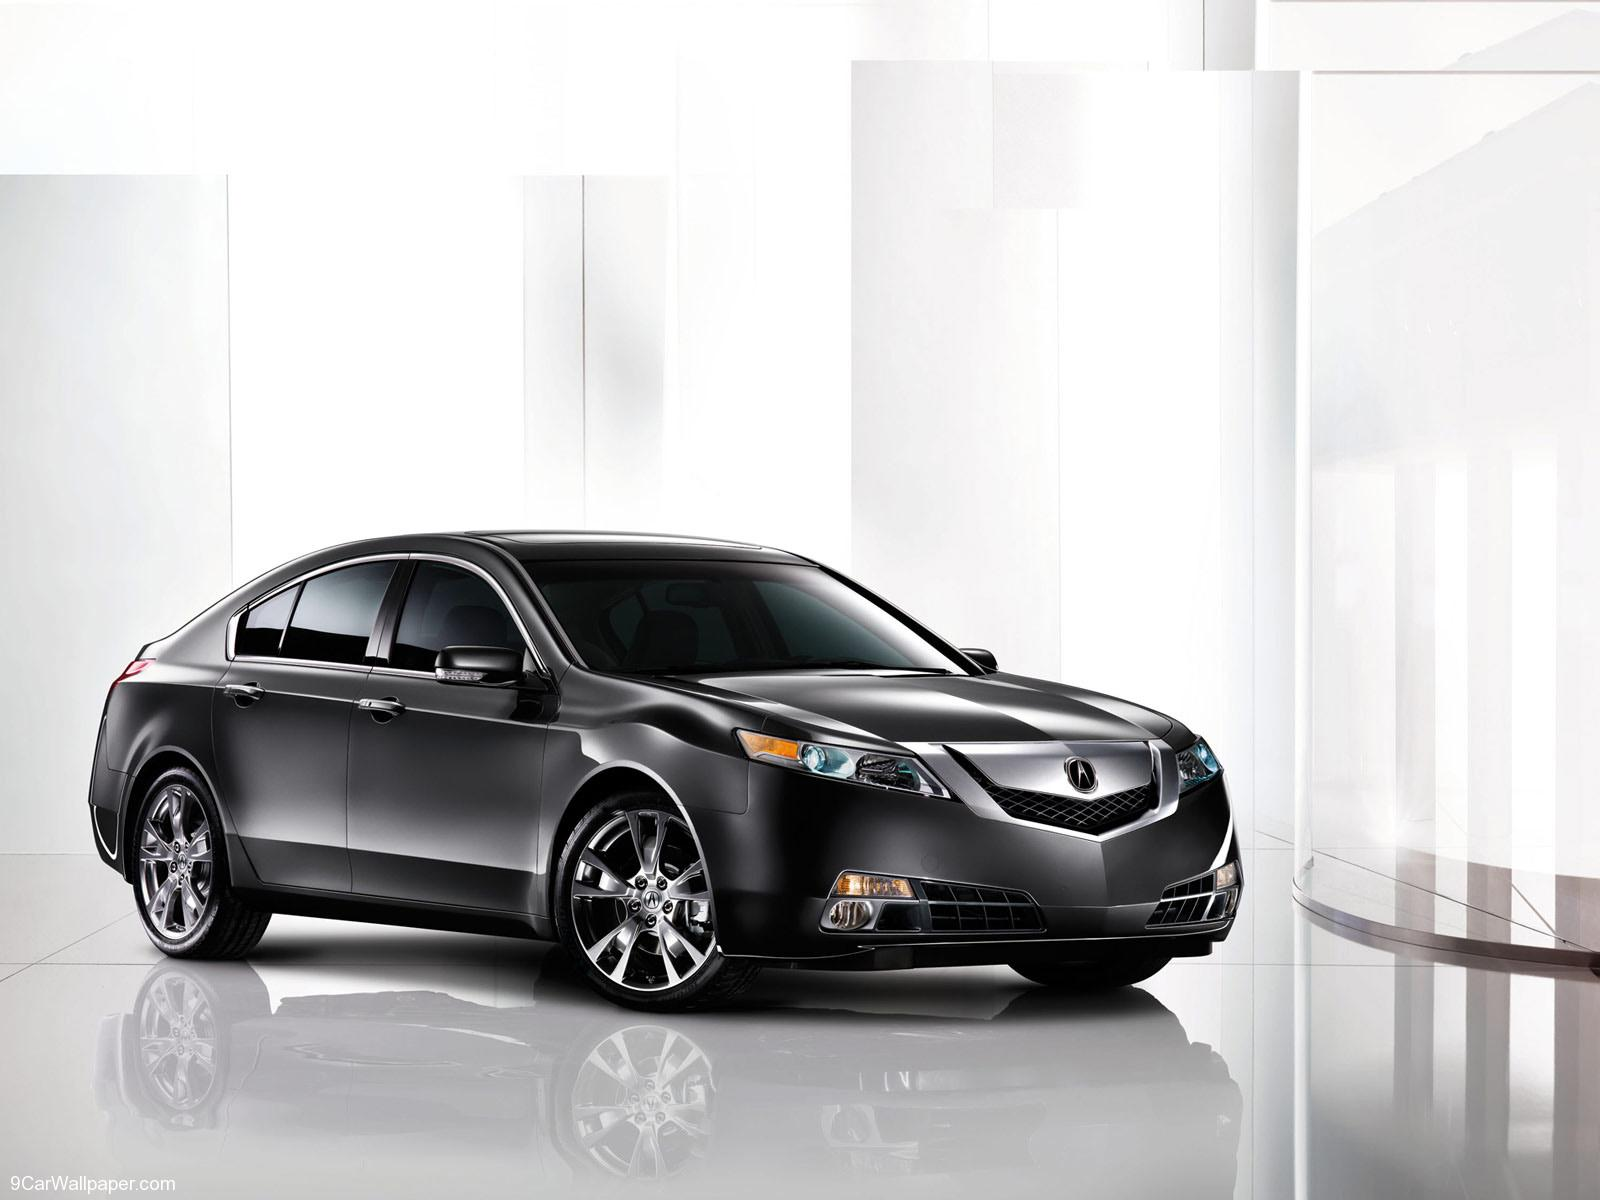 Acura TL Wallpapers 30 1600x1200